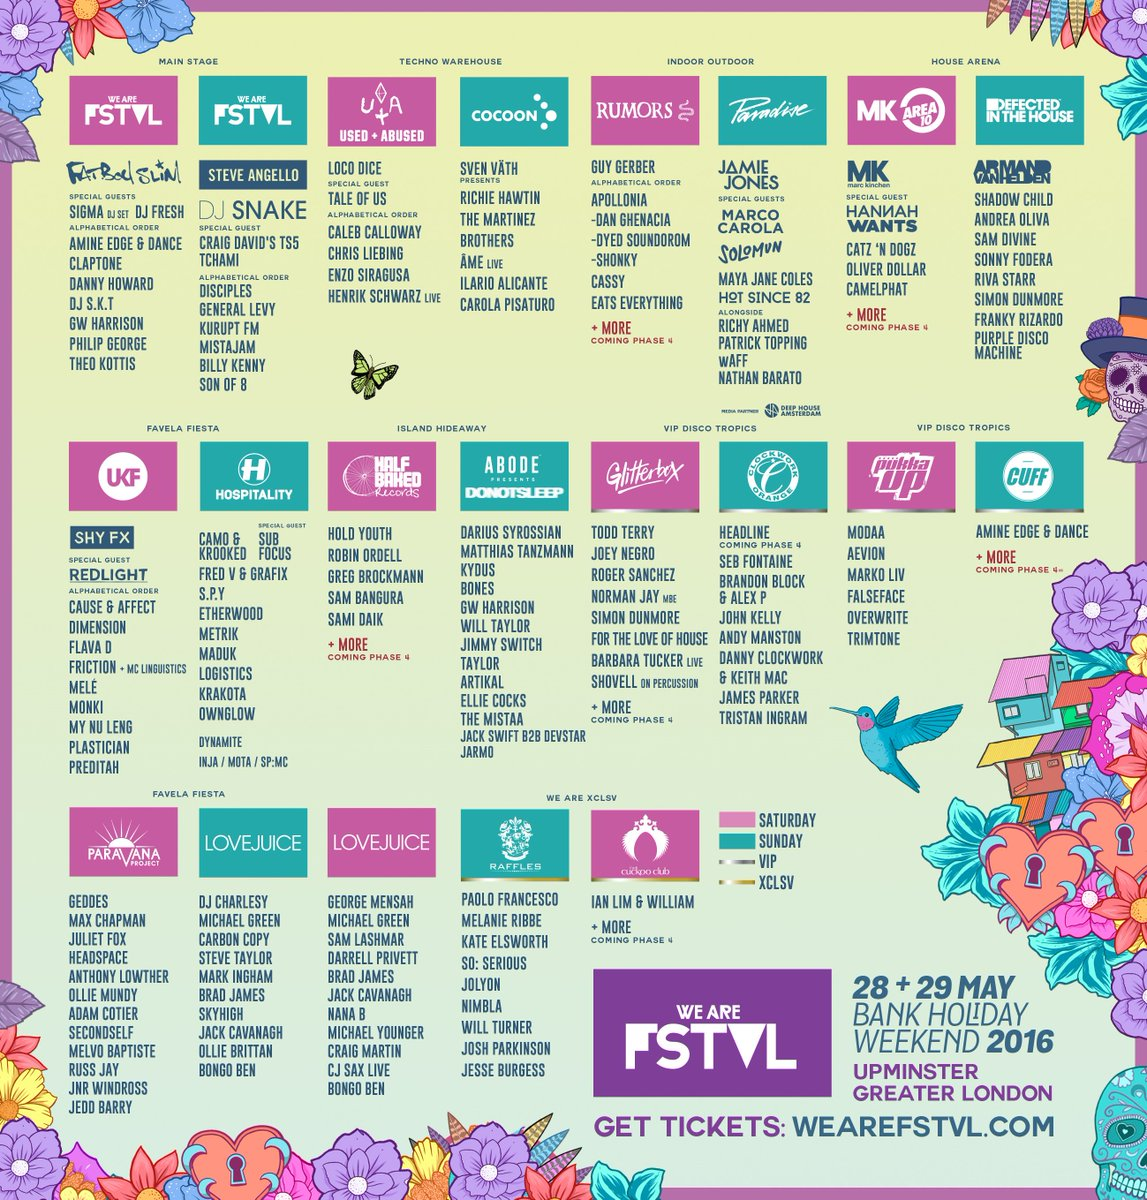 Retweet to win x2 VIP weekend tickets to @wearefstvl 2016. Final tickets: https://t.co/qP1WvquhUs.   GO GO GO https://t.co/A2pxHpjCl0